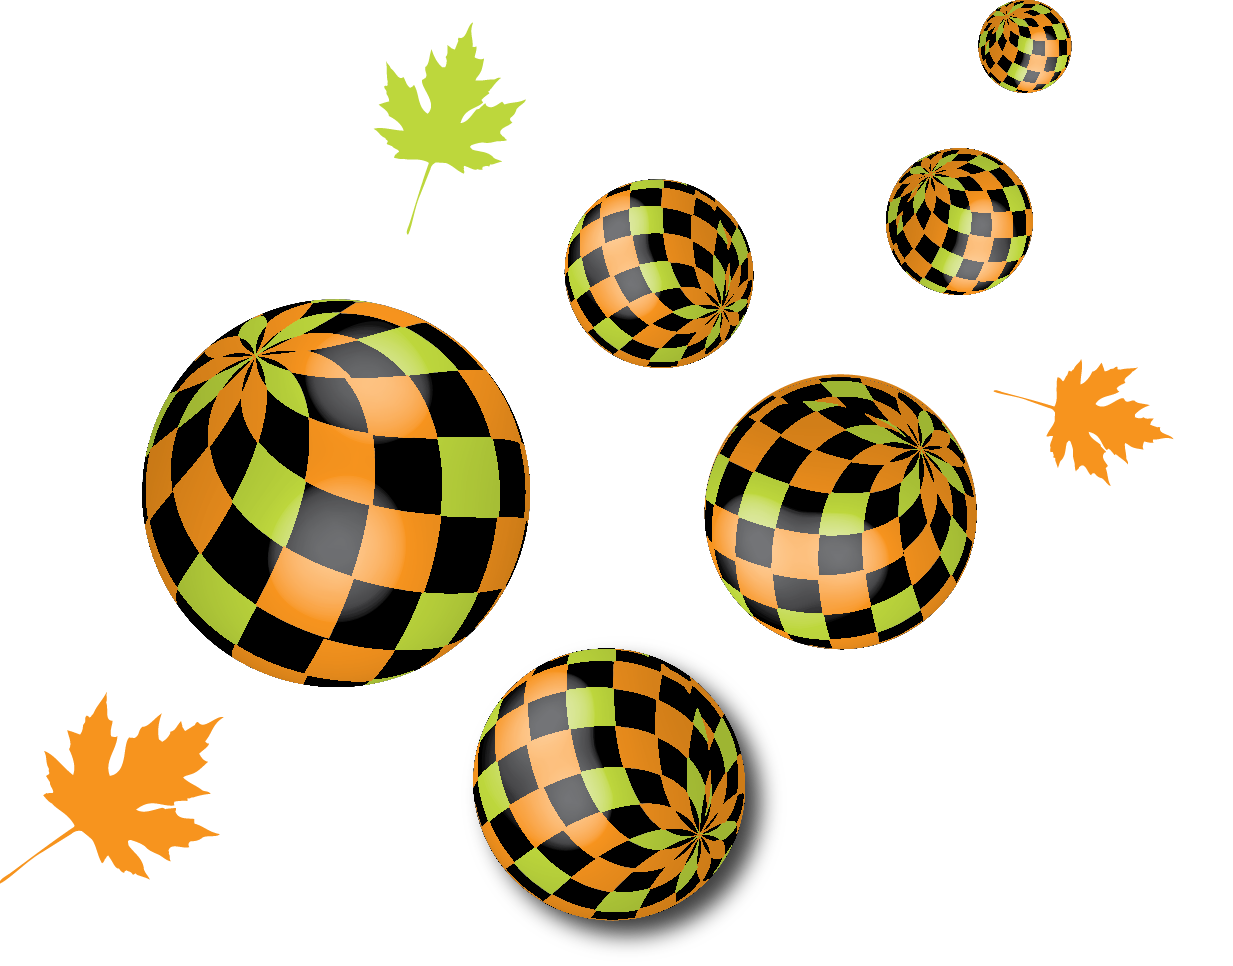 balls flying in perspective with mapple leaves